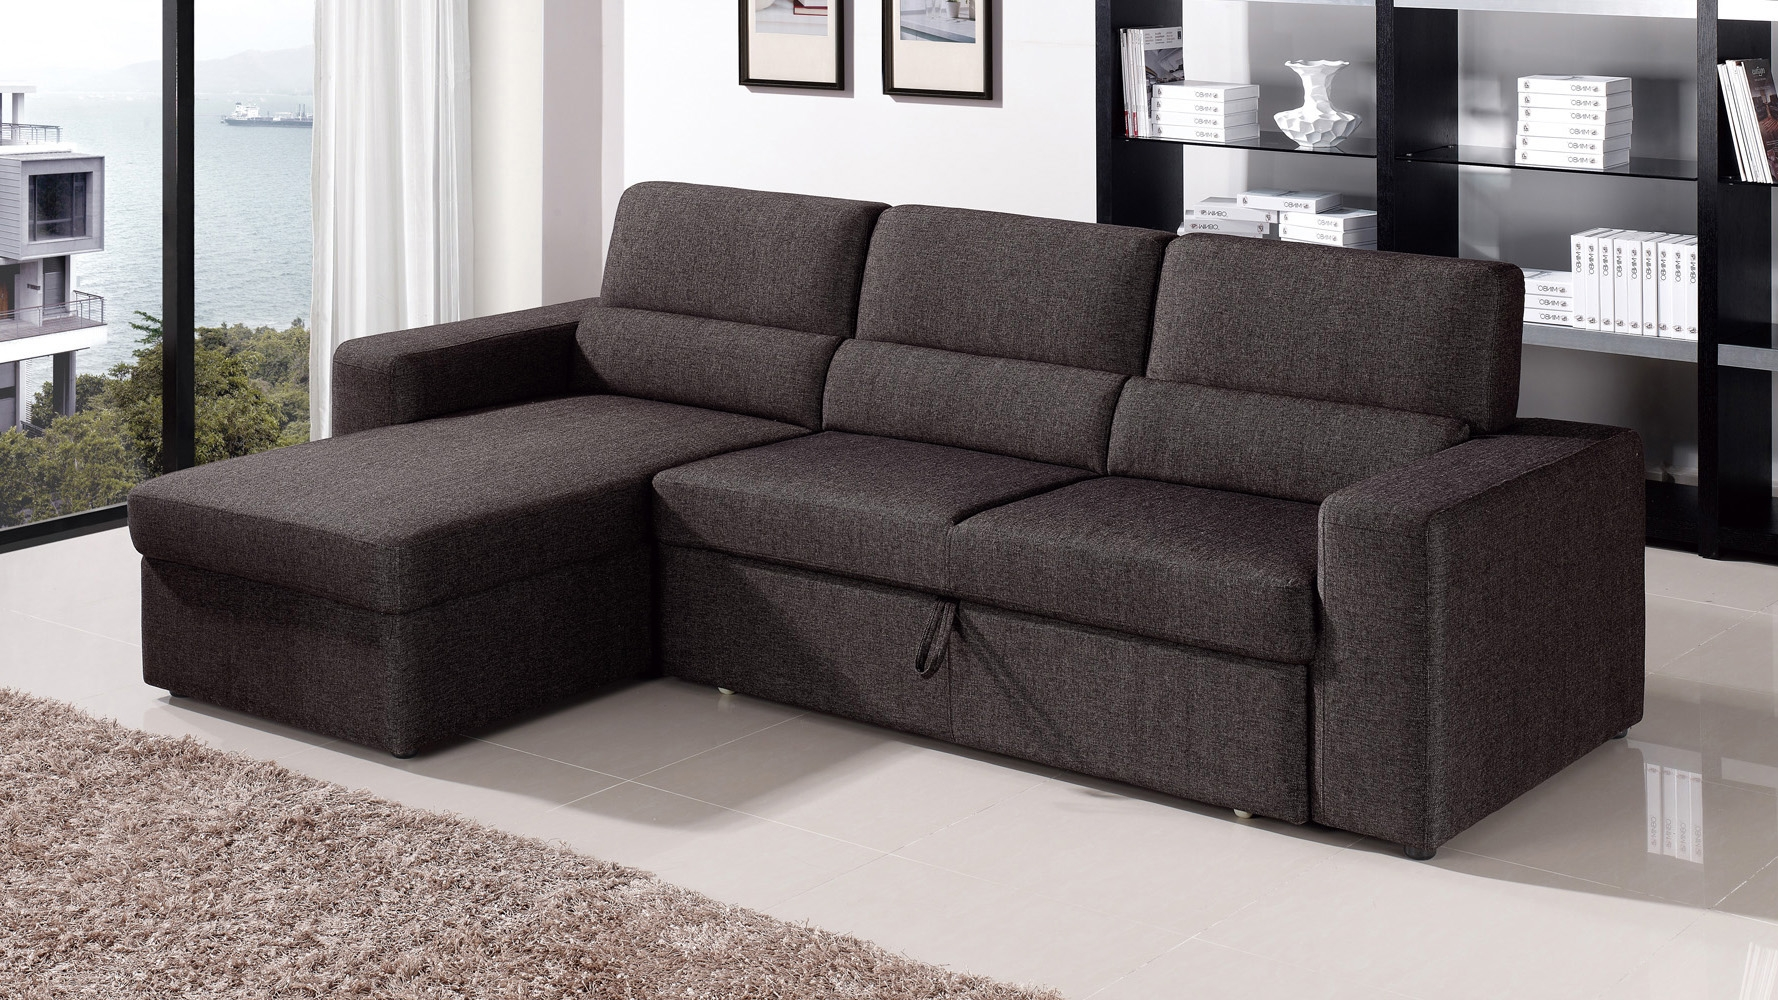 Blackbrown Clubber Sleeper Sectional Sofa Zuri Furniture Inside Pull Out Sofa Chairs (Image 5 of 15)